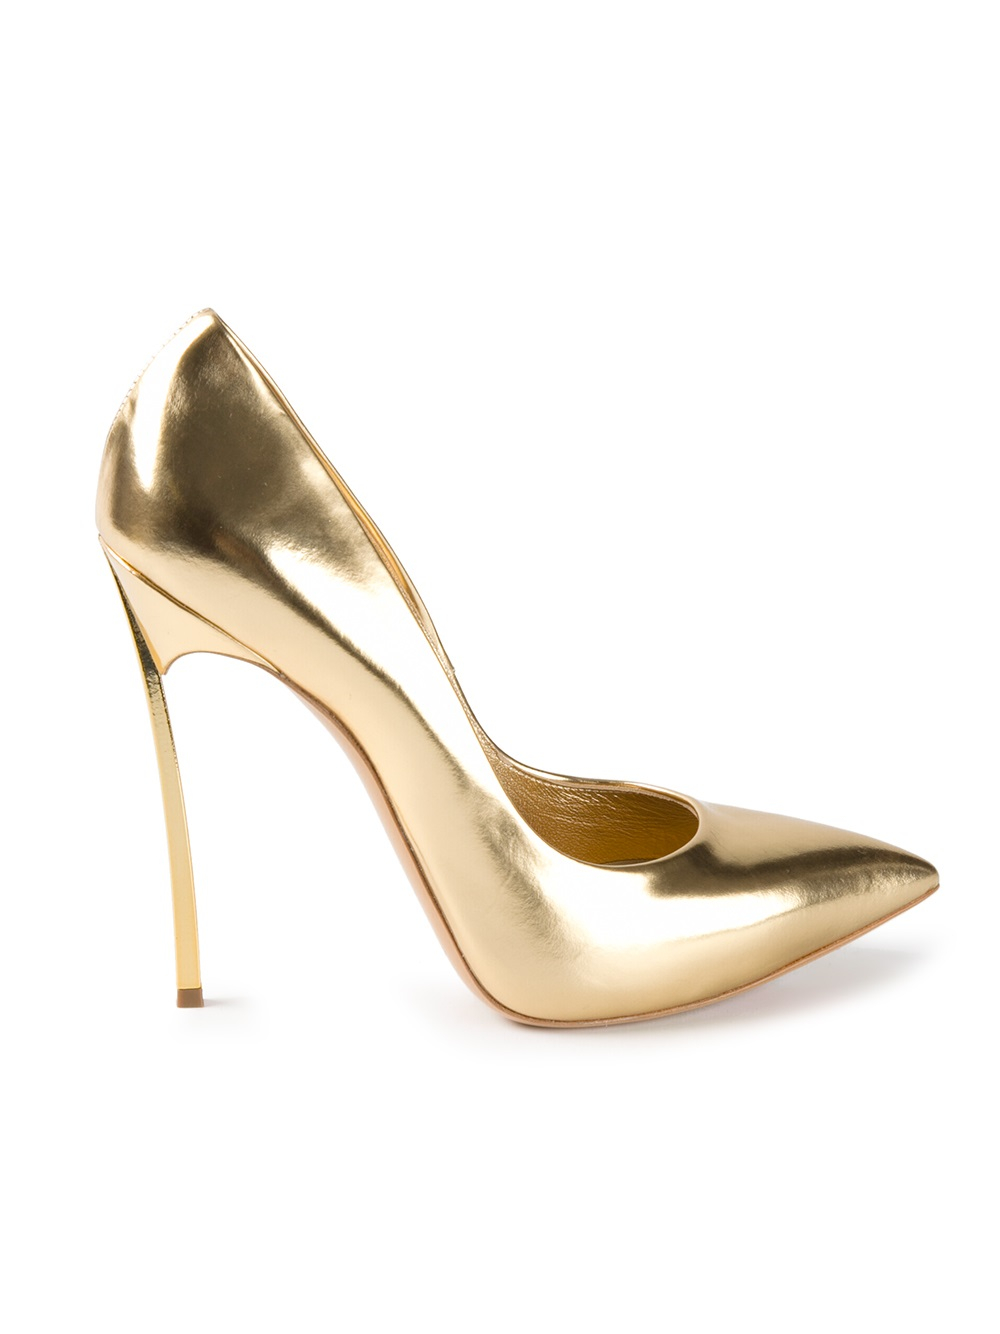 When a special event is around the corner, women's high heels are a great investment. A stunning set of cage dress pumps is the added glamor you need to complement an elegant gown. Sears carries a wide variety of sizes so you feel comfortable throughout the day.